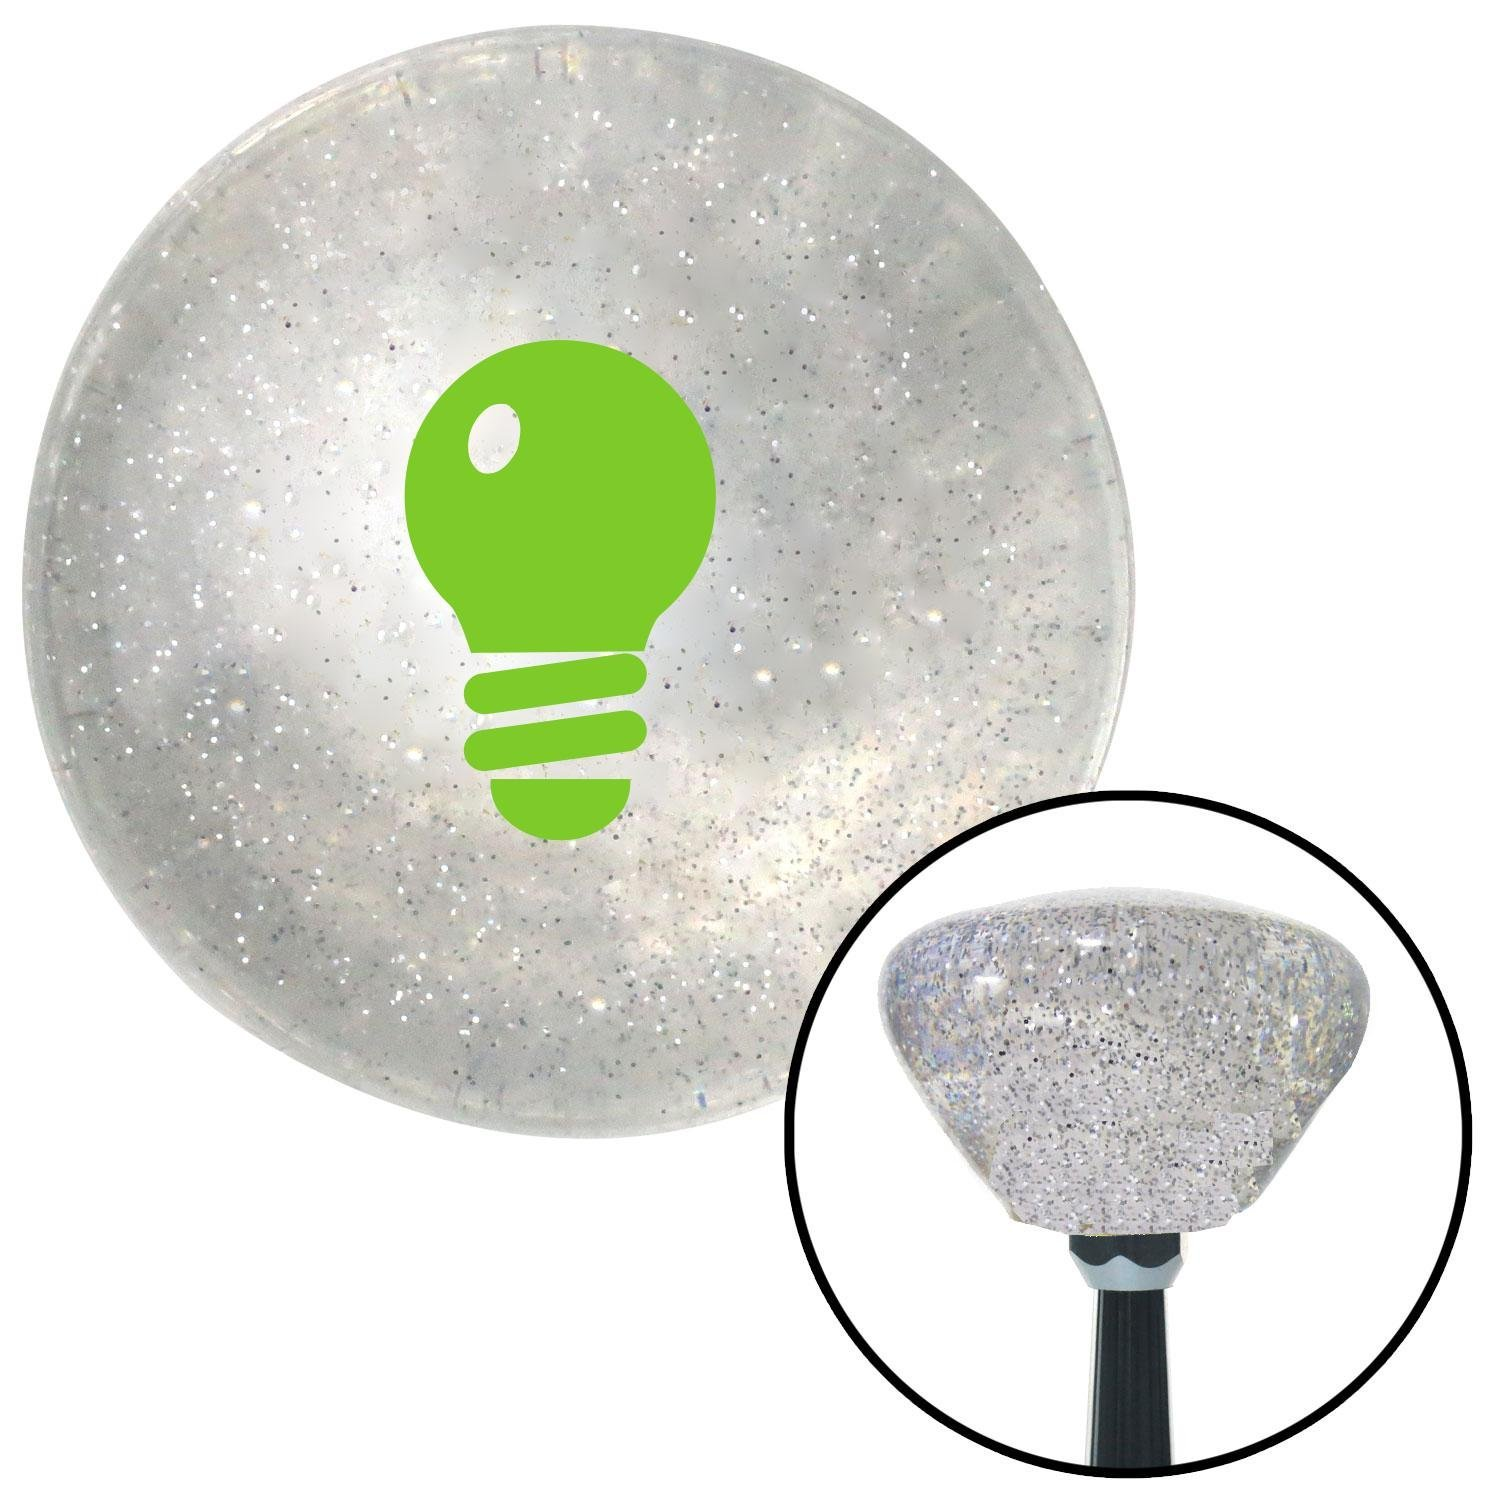 Green Light Bulb American Shifter 162663 Clear Retro Metal Flake Shift Knob with M16 x 1.5 Insert